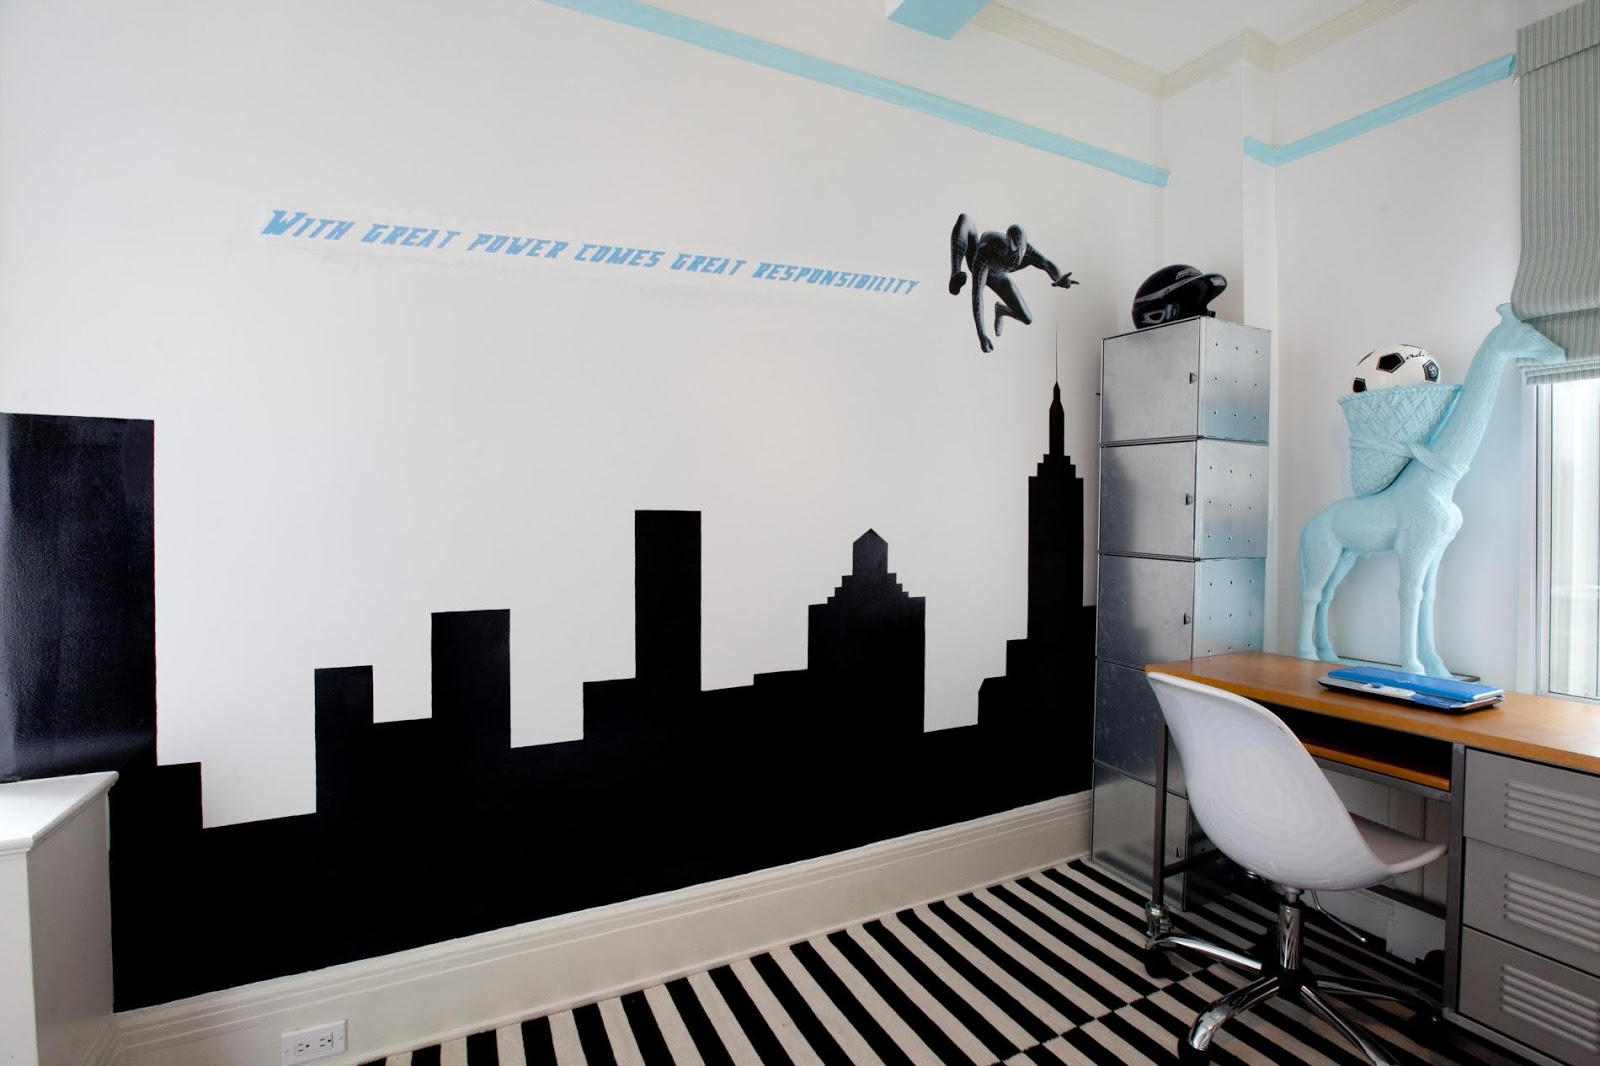 The Interior Design Ideas: Ideas For Little Boys Bedroom Cool Boys Room  Paint Ideas For Colorful And Brilliant Interiors. A Clever Paint Job In A  Small ...